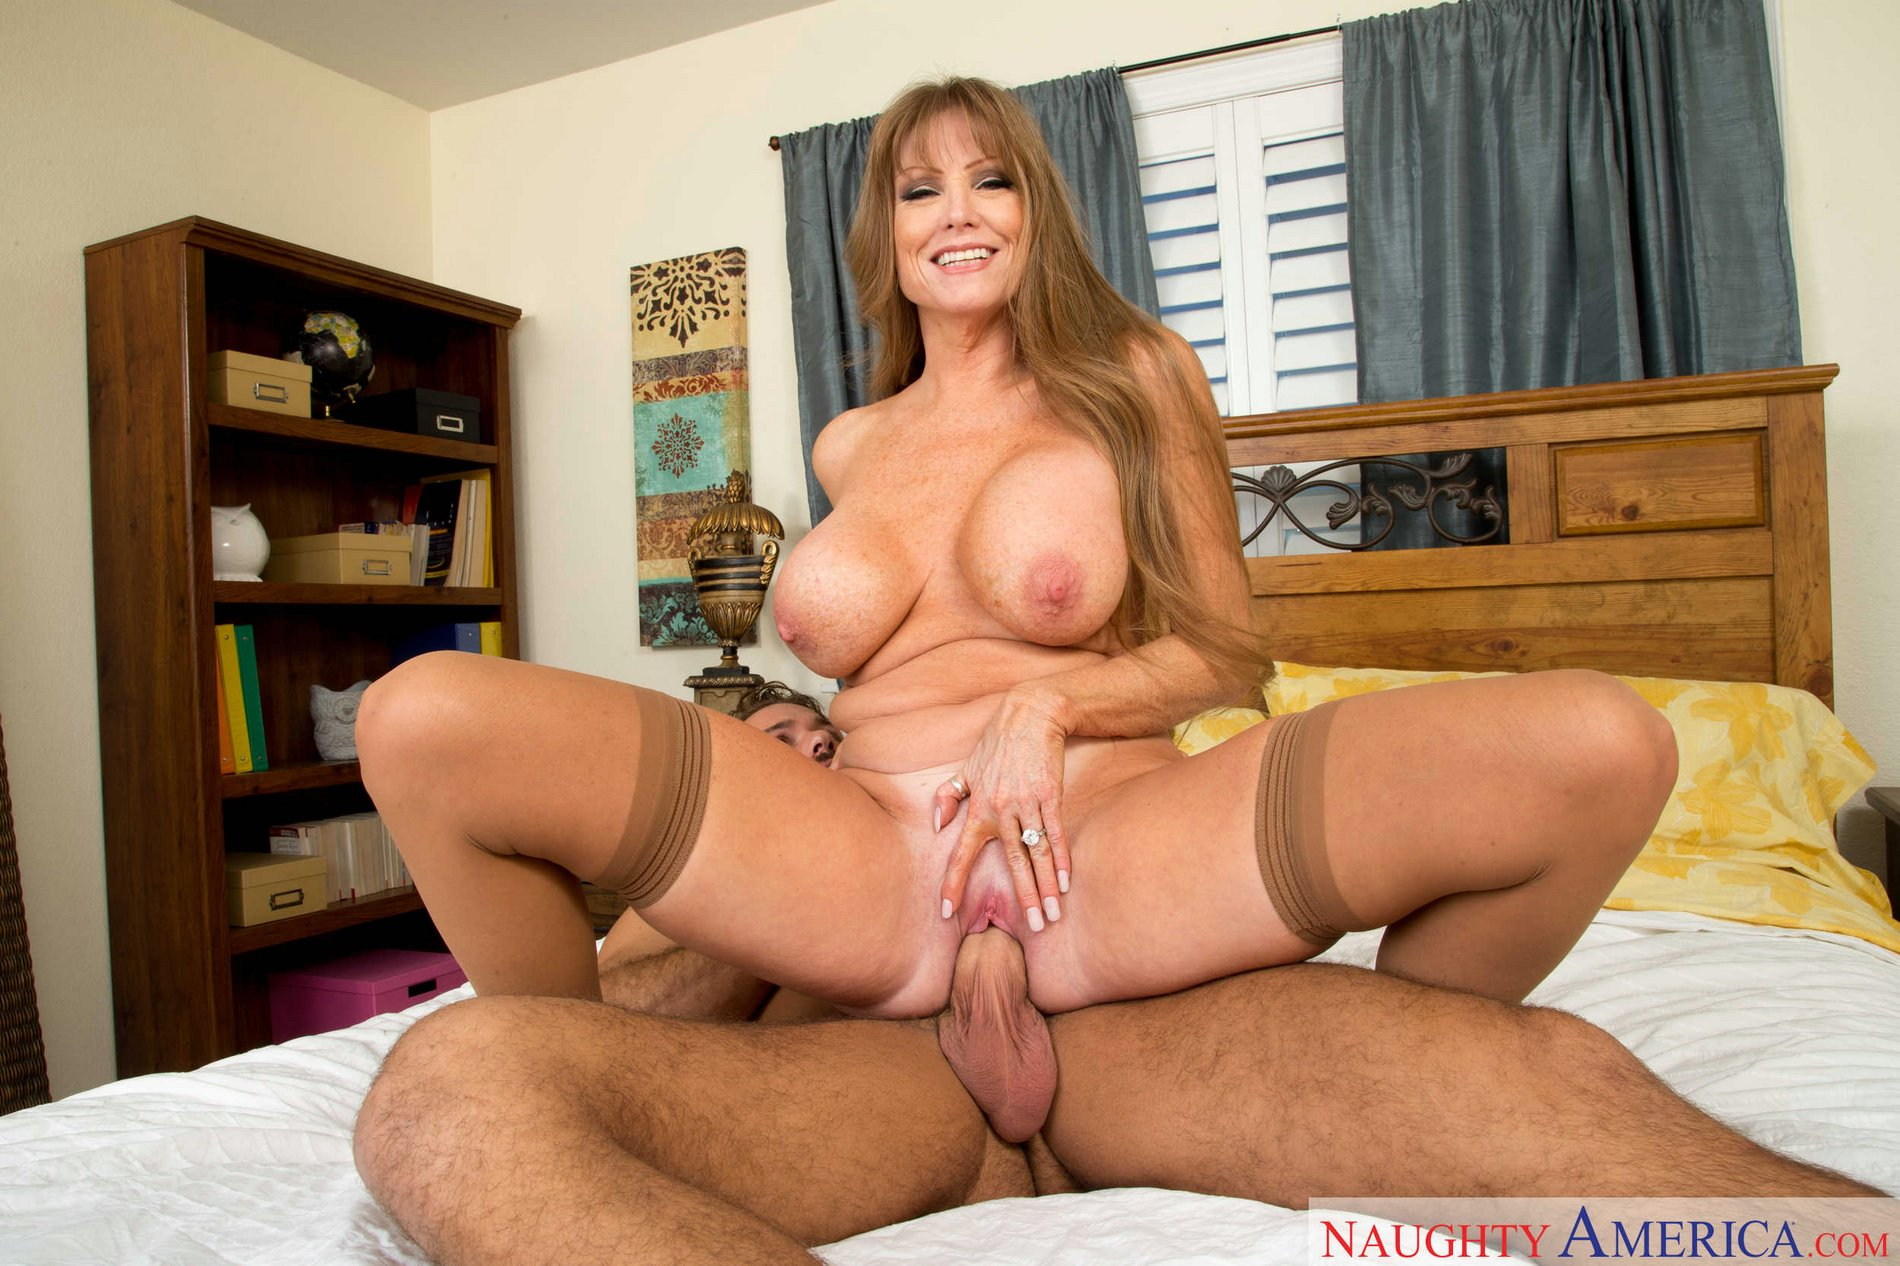 Curvaceous granny darla crane easily seduces younger guy